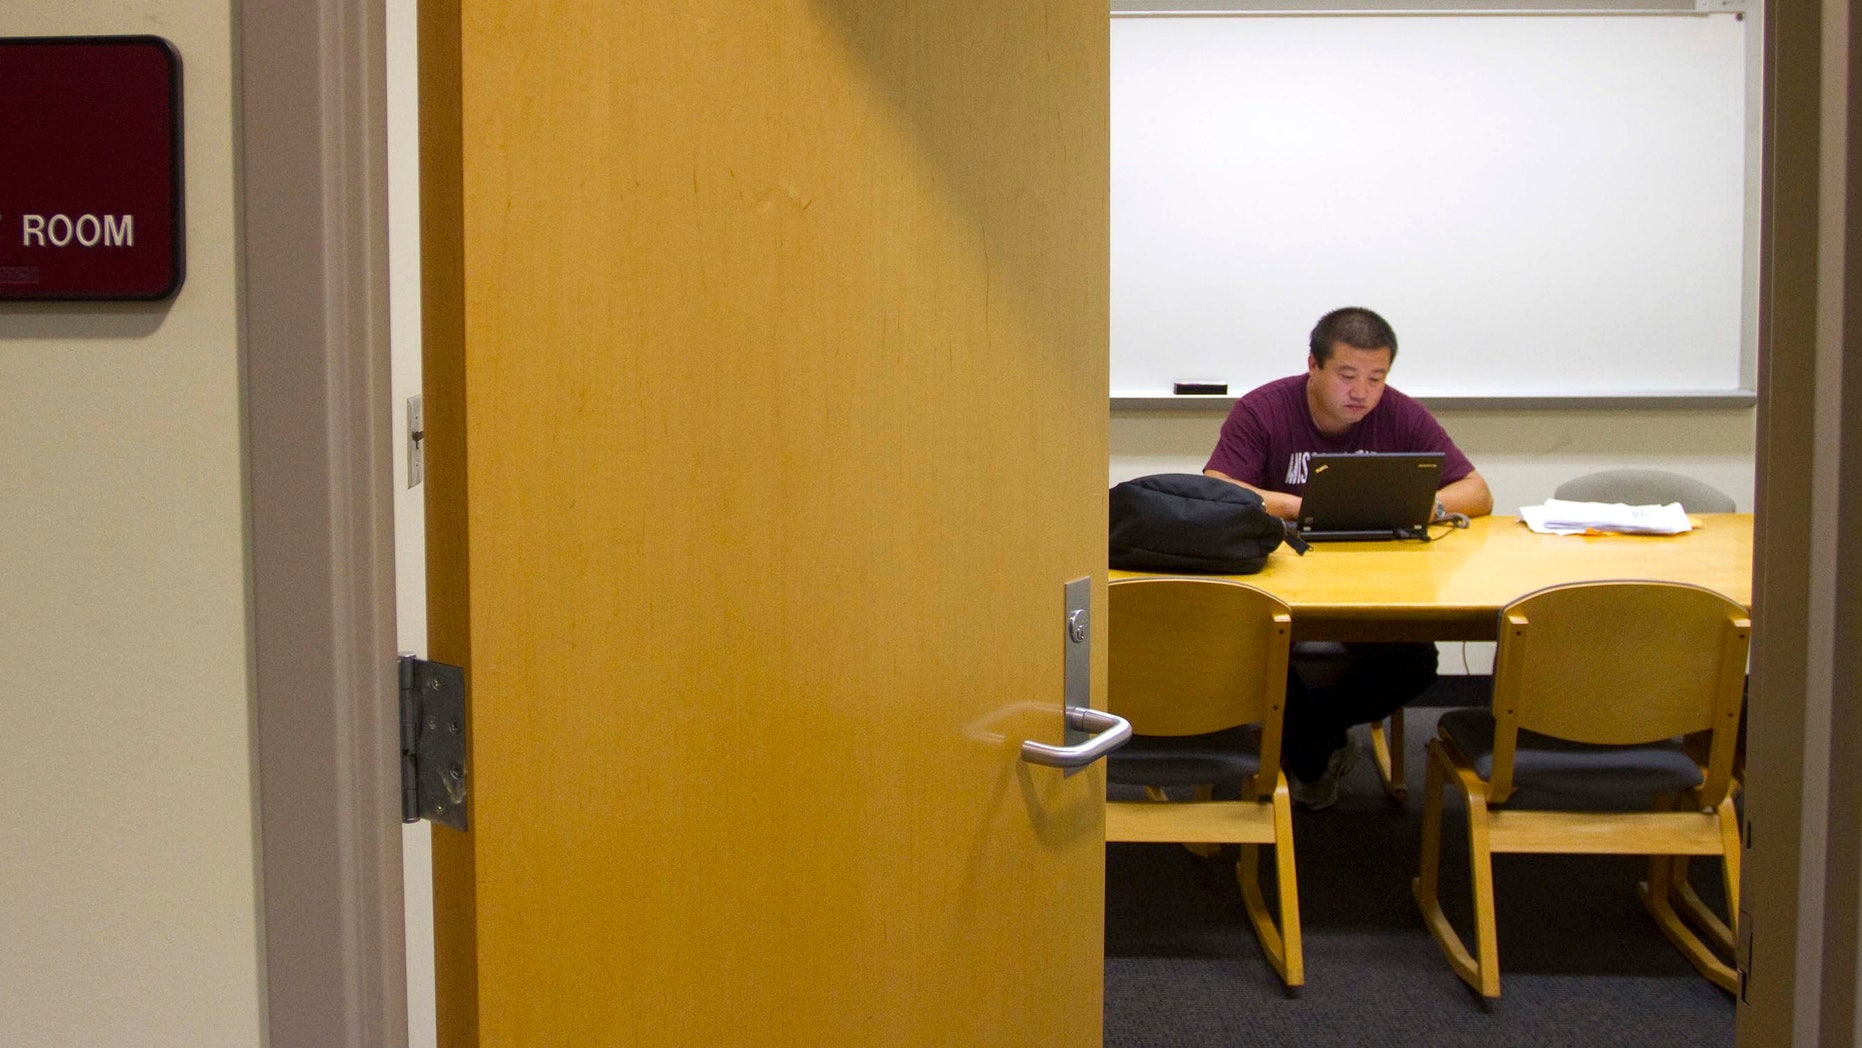 June 28, 2011: Wang Chengdong, a Chinese student in the Executive MBA program, works in a library study room at Missouri State University in Springfield, Mo.